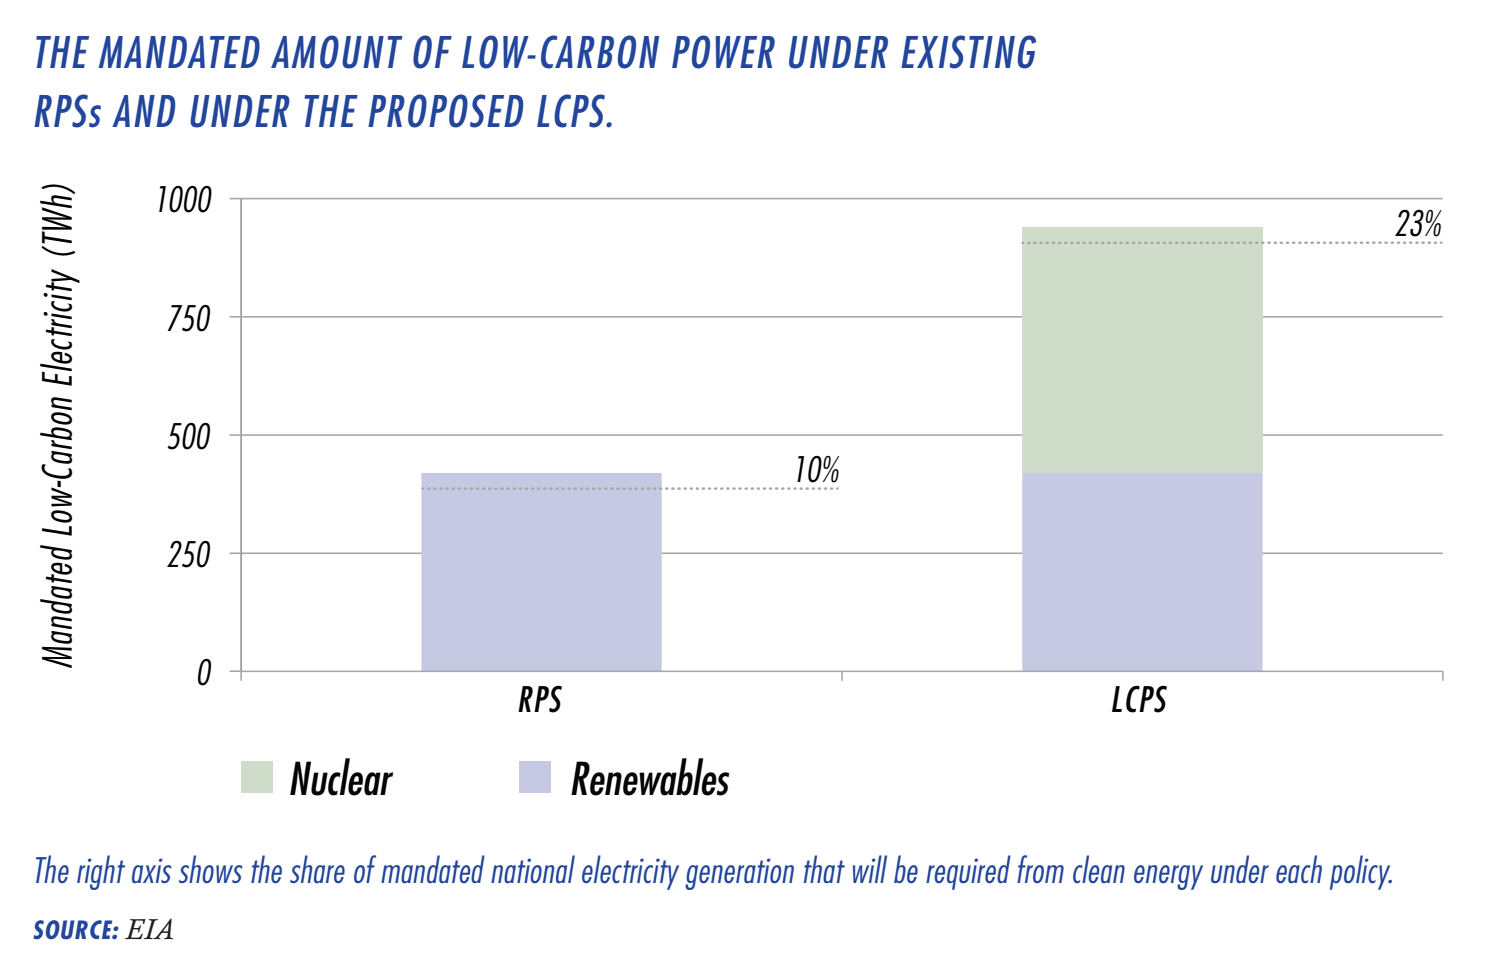 Are there targets for energy efficiency and deployment of low carbon technologies in the US?